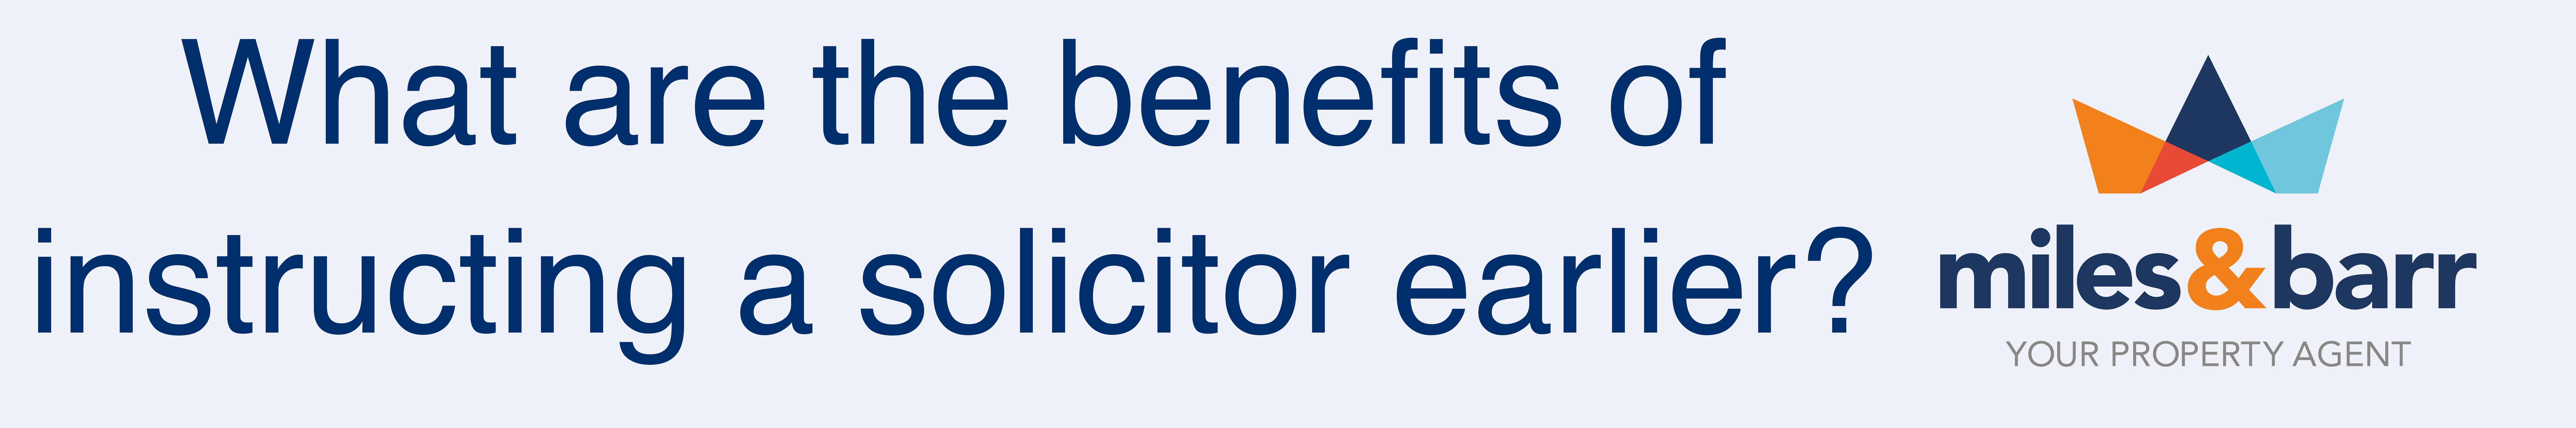 Solicitor benefits